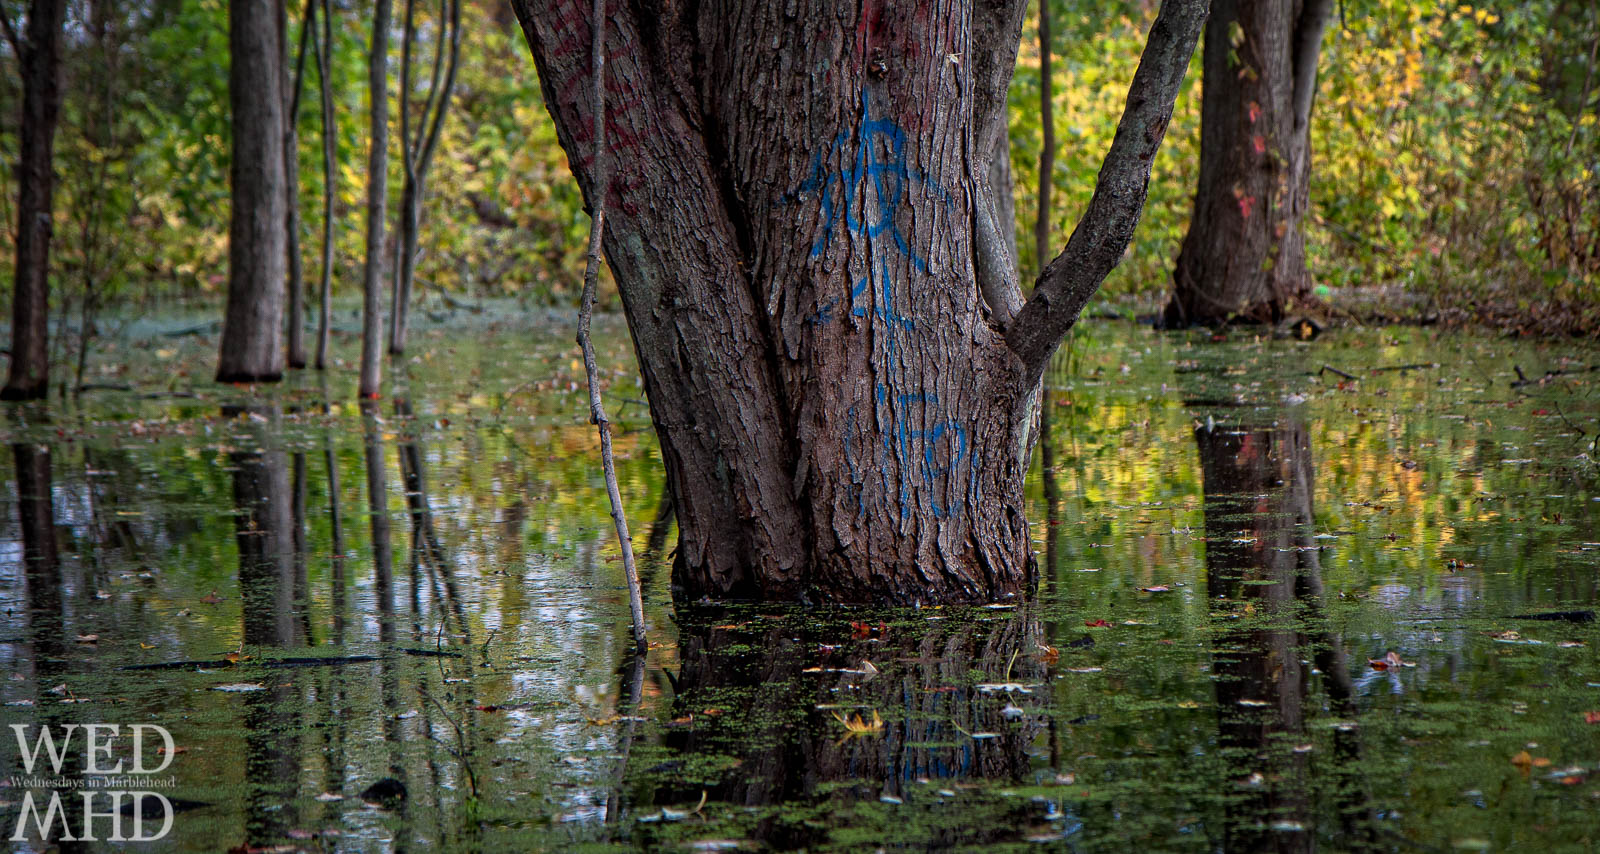 Trees Rise from a Colorful Swamp